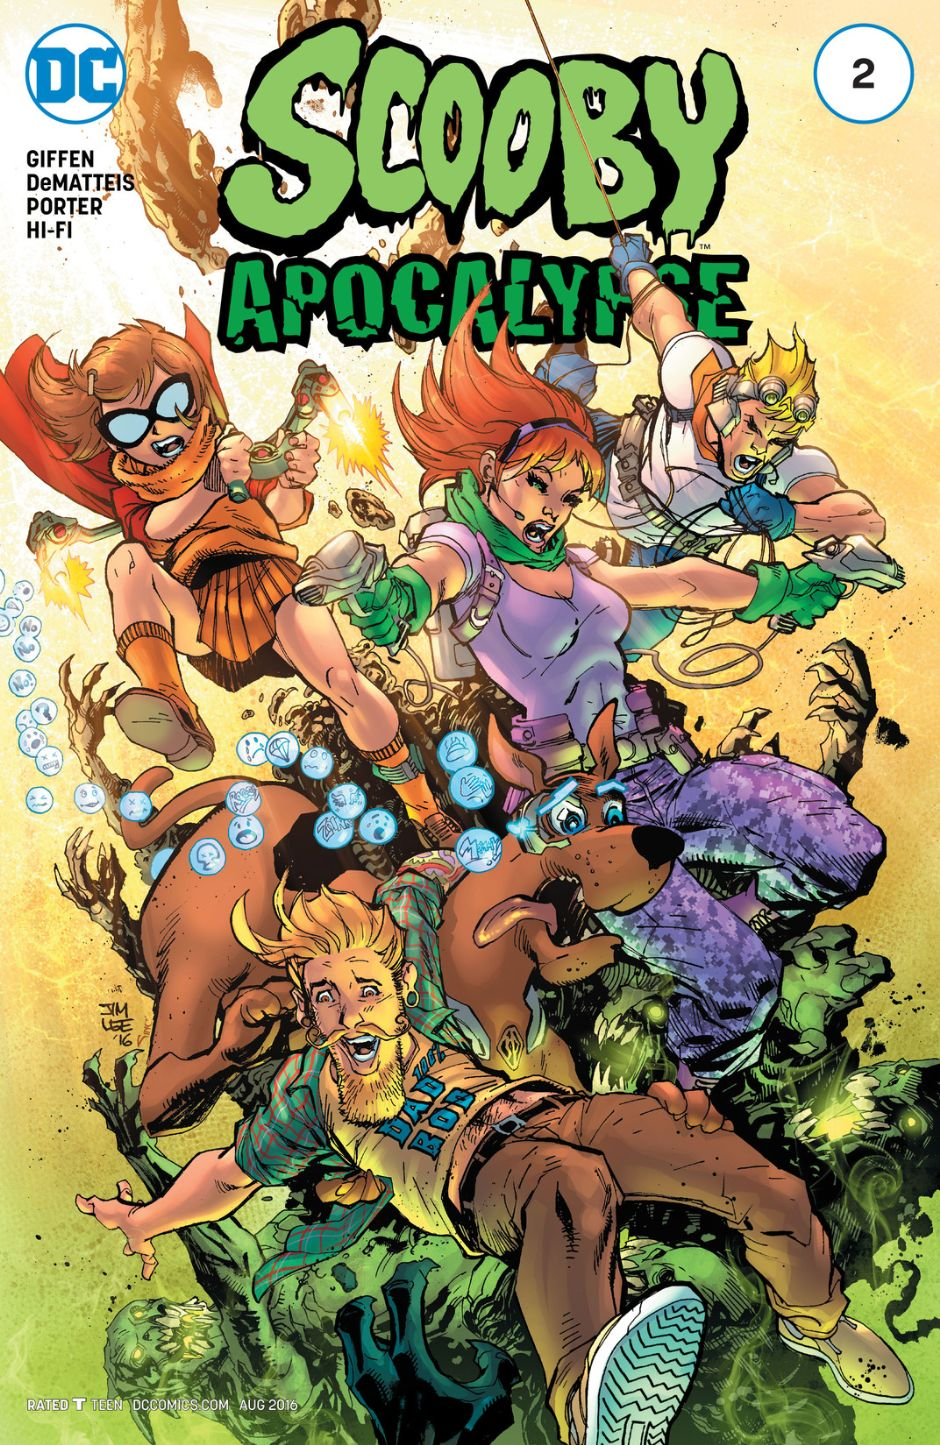 Scooby Apocalypse Vol 1 2